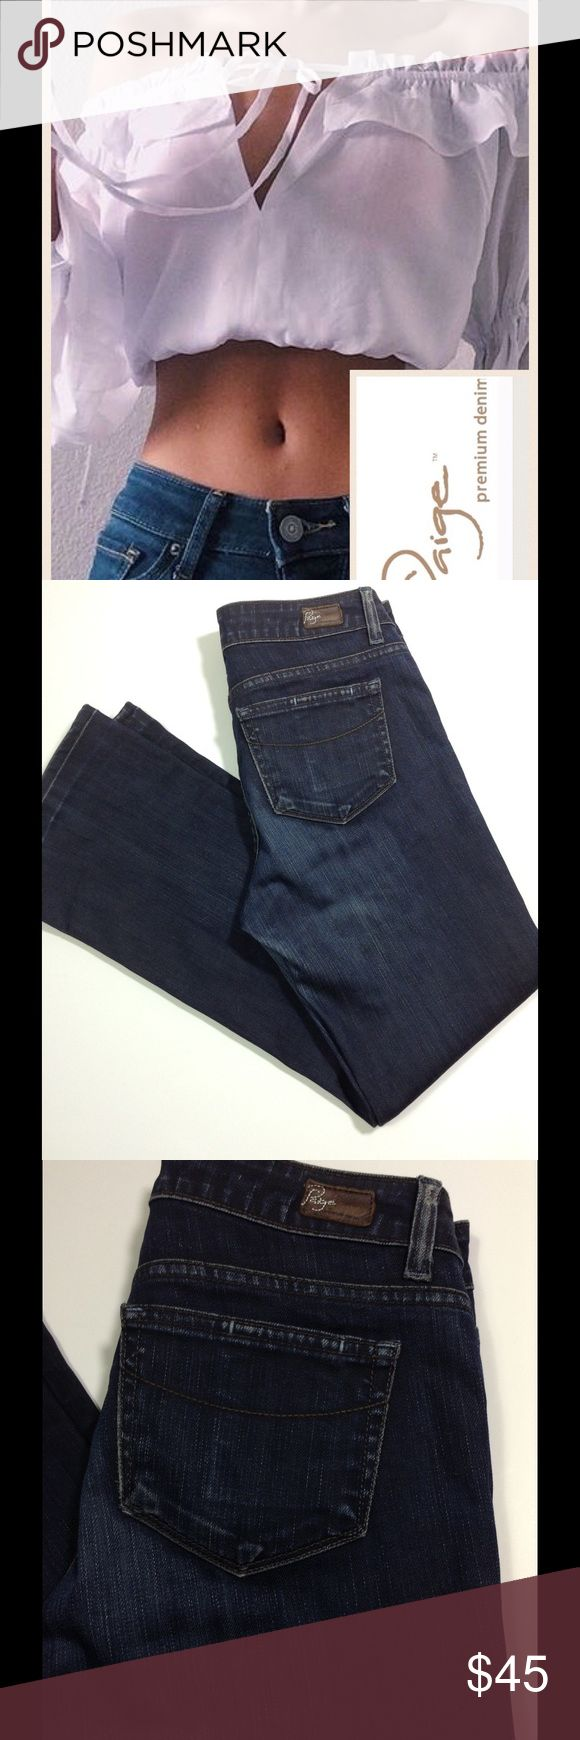 """🆕 Paige Jeans Paige Melbourne Bootcut Jeans, Dark Washed, Distressed, New (Paper Tag Still on Inside), Price Tag Missing, Waist 32"""" (Flat ) Rise 8 1/2"""", Length 29"""", Cuff 9"""" Paige Jeans Jeans Boot Cut"""